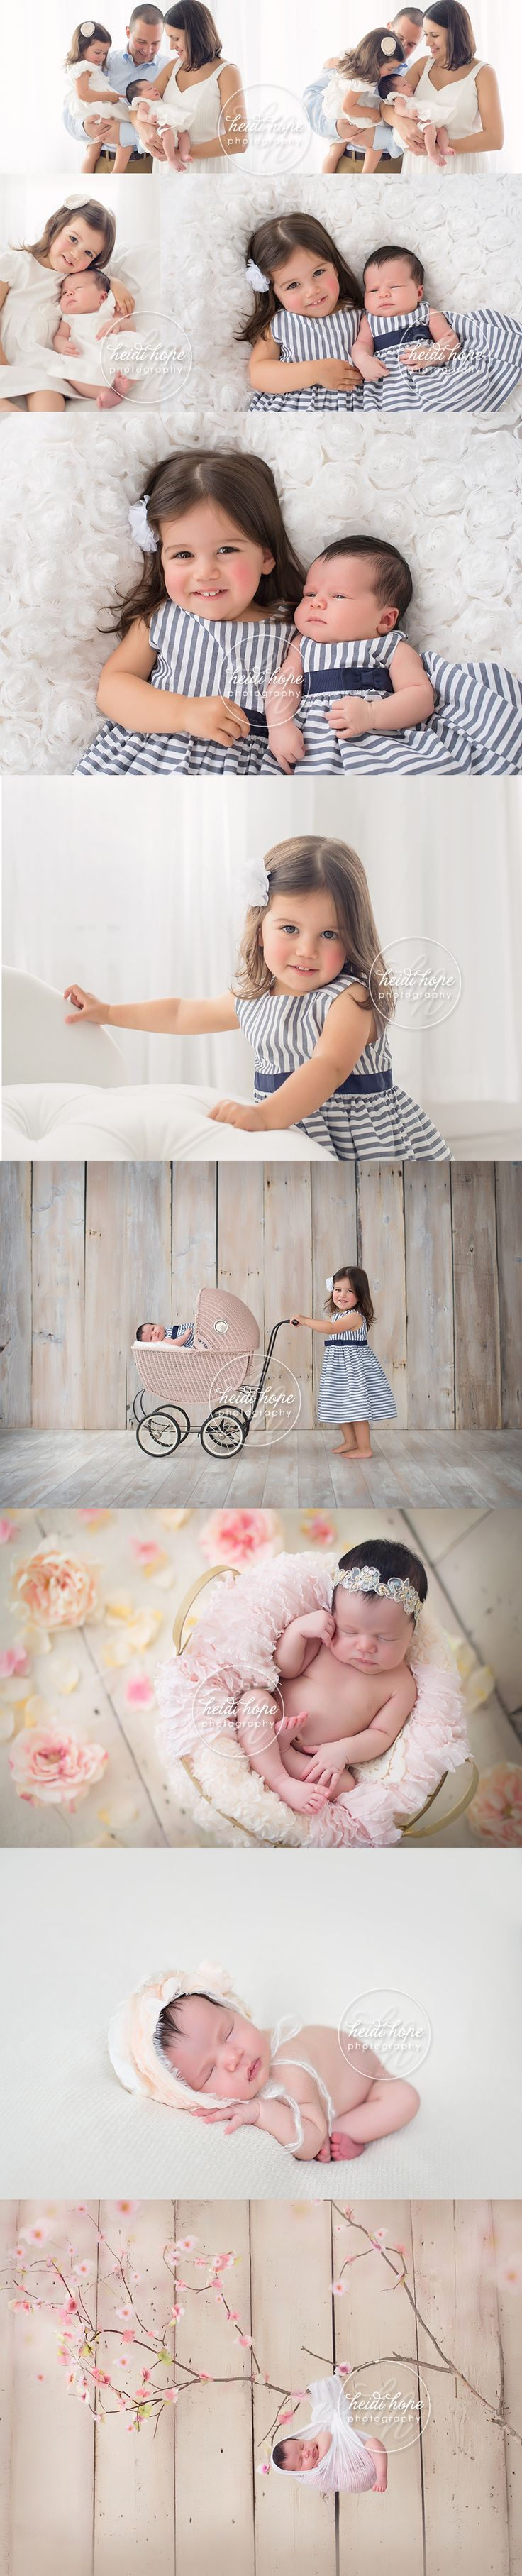 Newborn baby R and her 2 year old big sister steal the show! #inspiration #adorable #family #photography